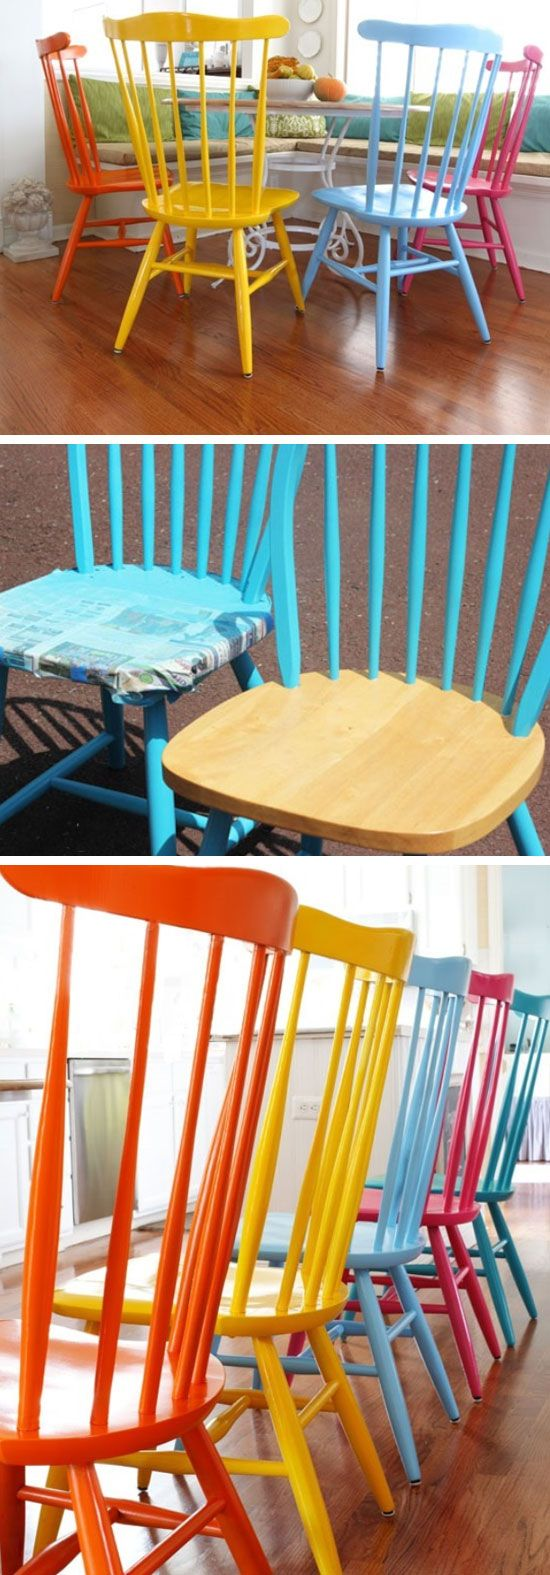 Spray Painting Wood Chairs   DIY Home Decorating on a Budget   DIY Projects for the Home Dollar Store